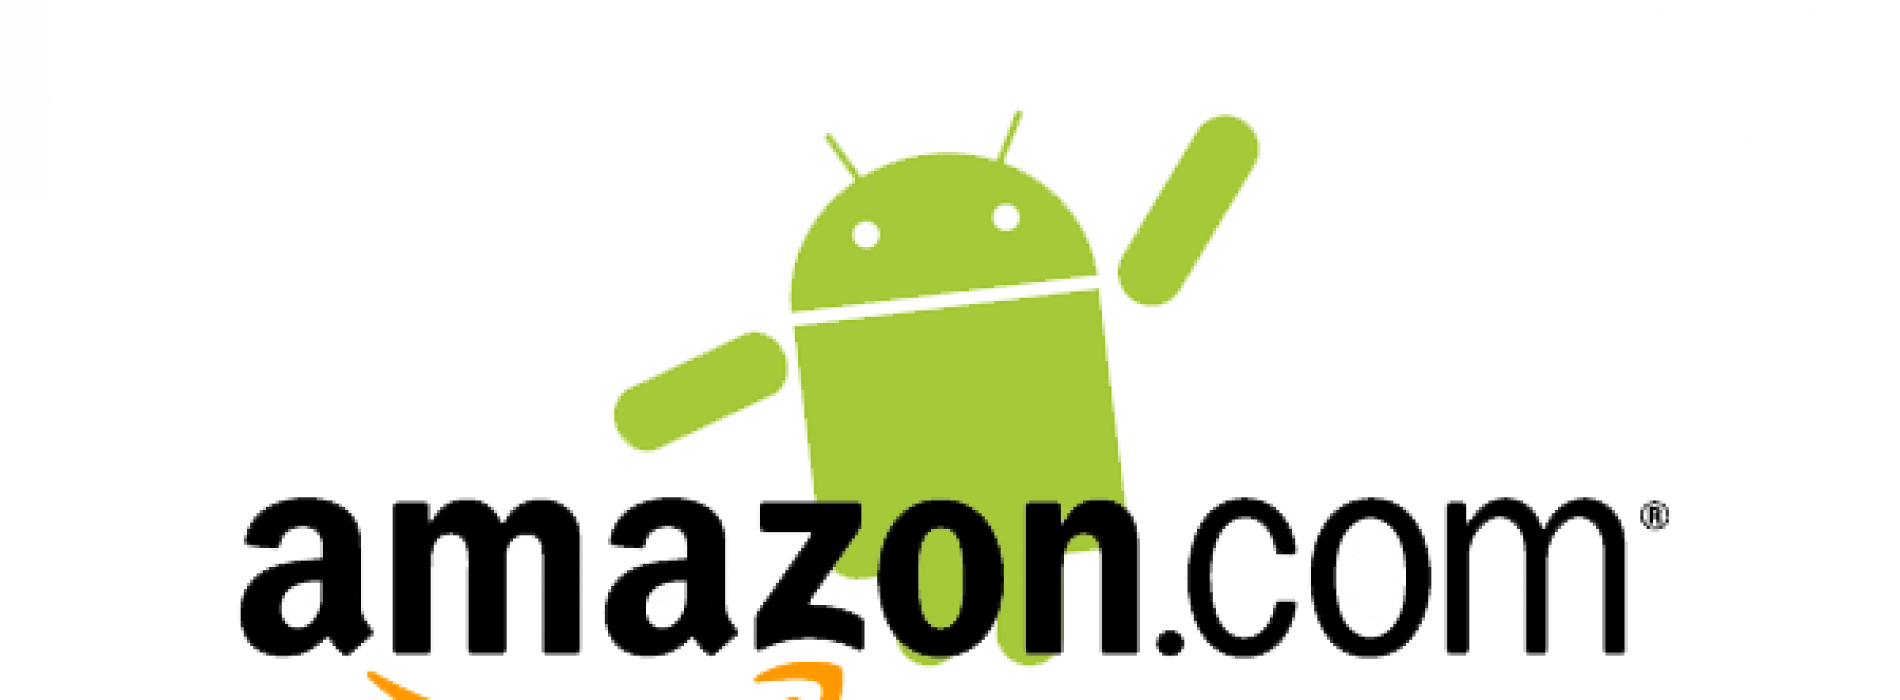 Amazon offering half off select Android apps for Black Friday weekend